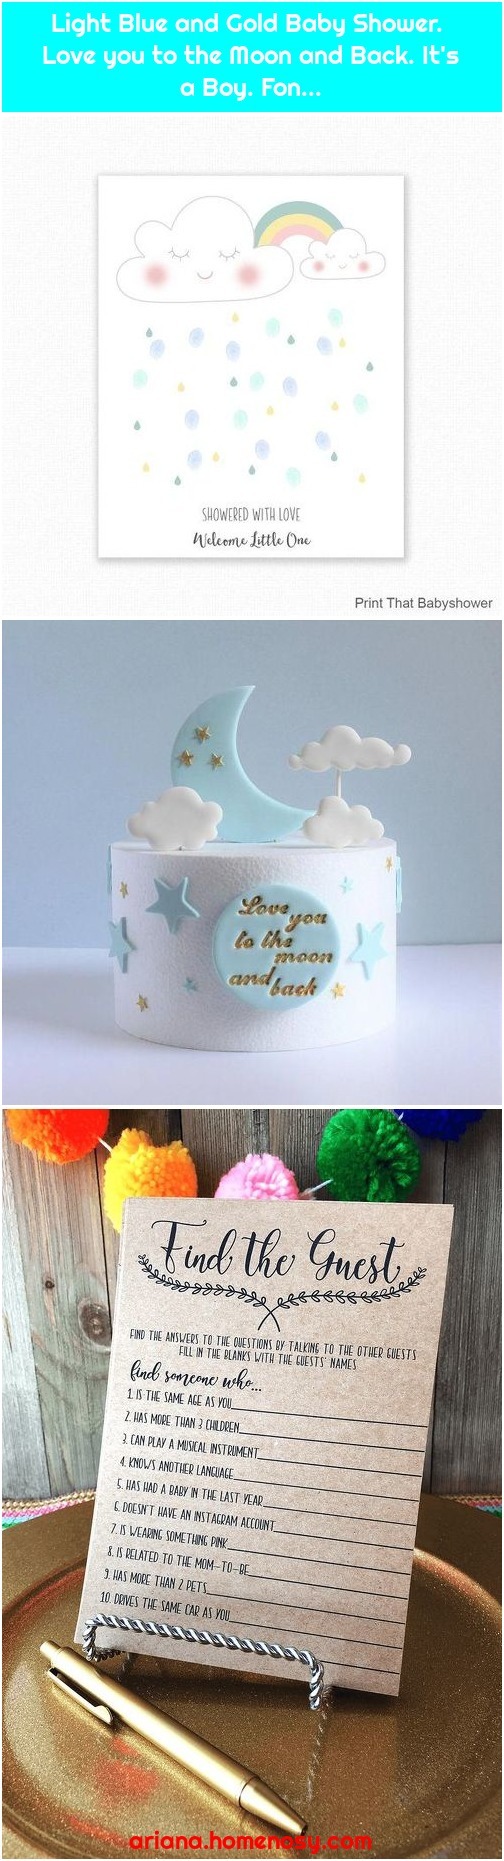 Light Blue and Gold Baby Shower. Love you to the Moon and Back. It's a Boy. Fon...